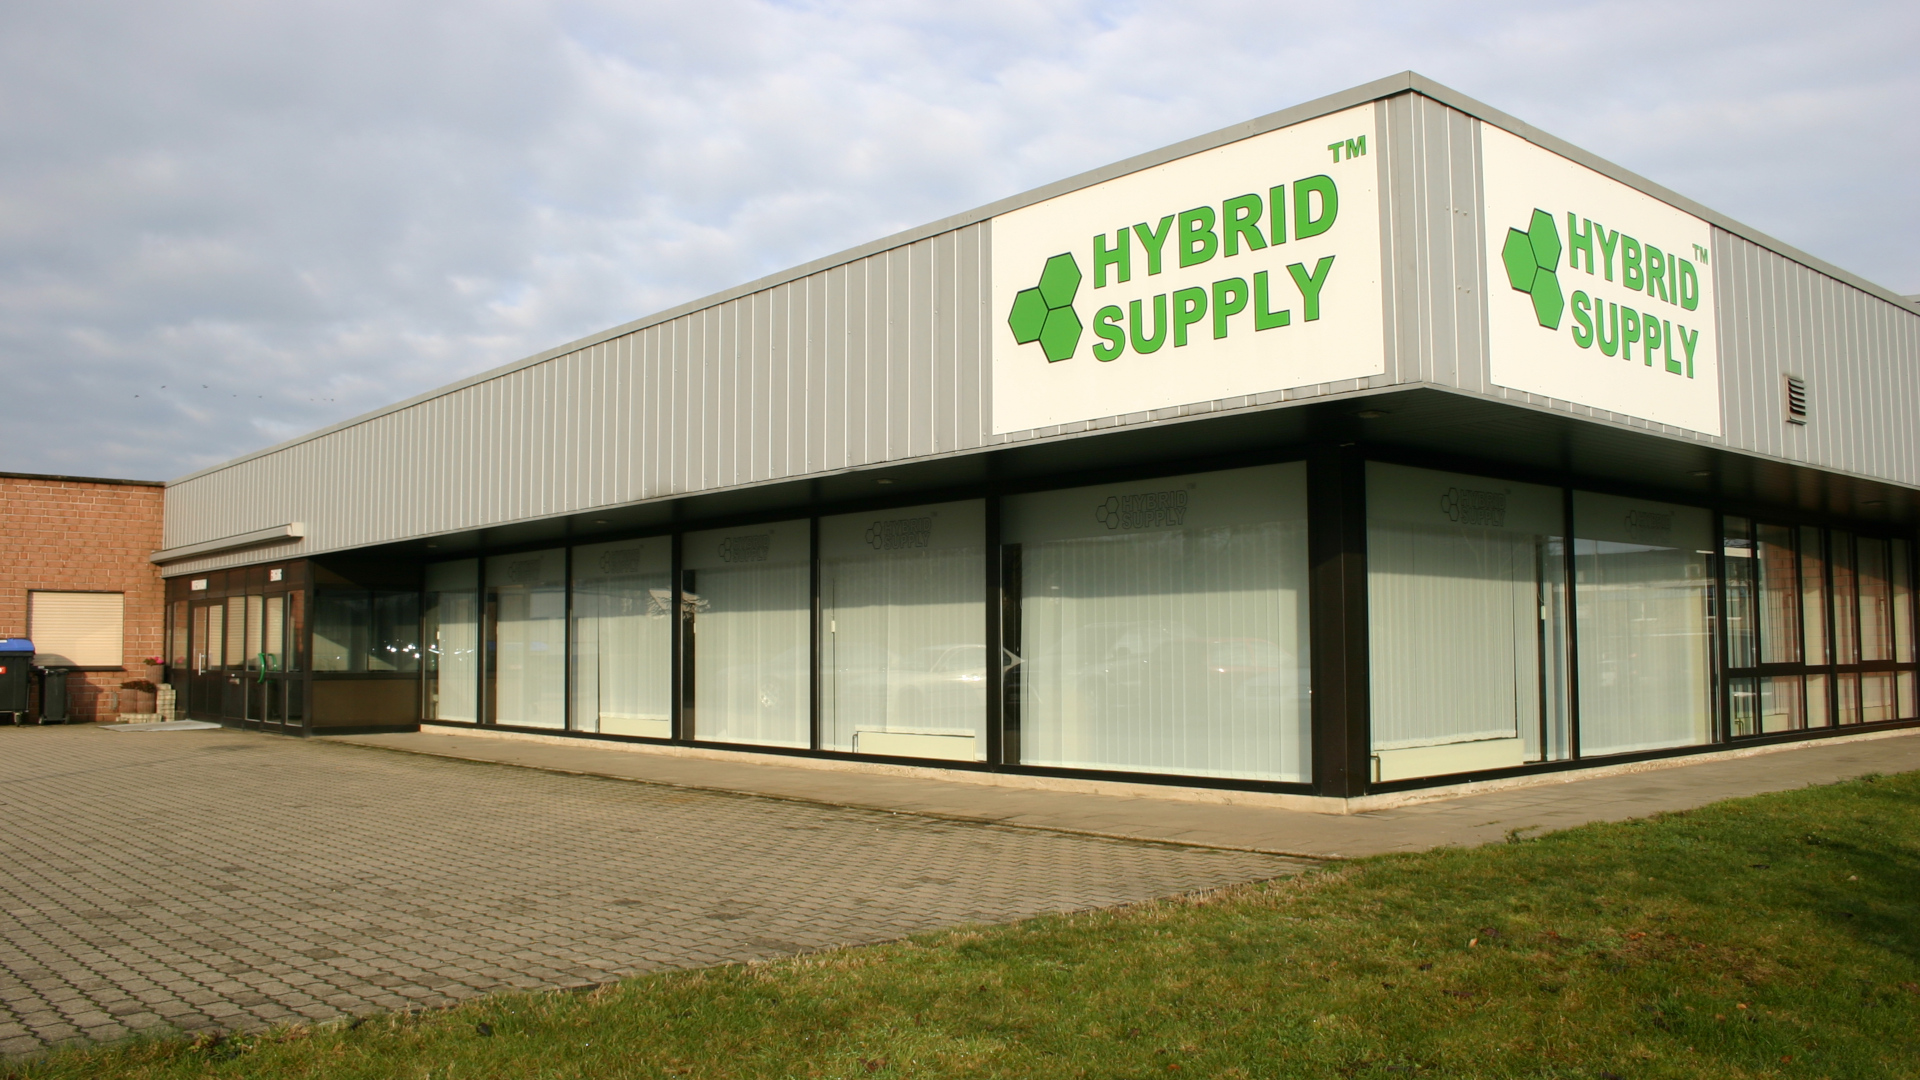 HybridSupply in 2007